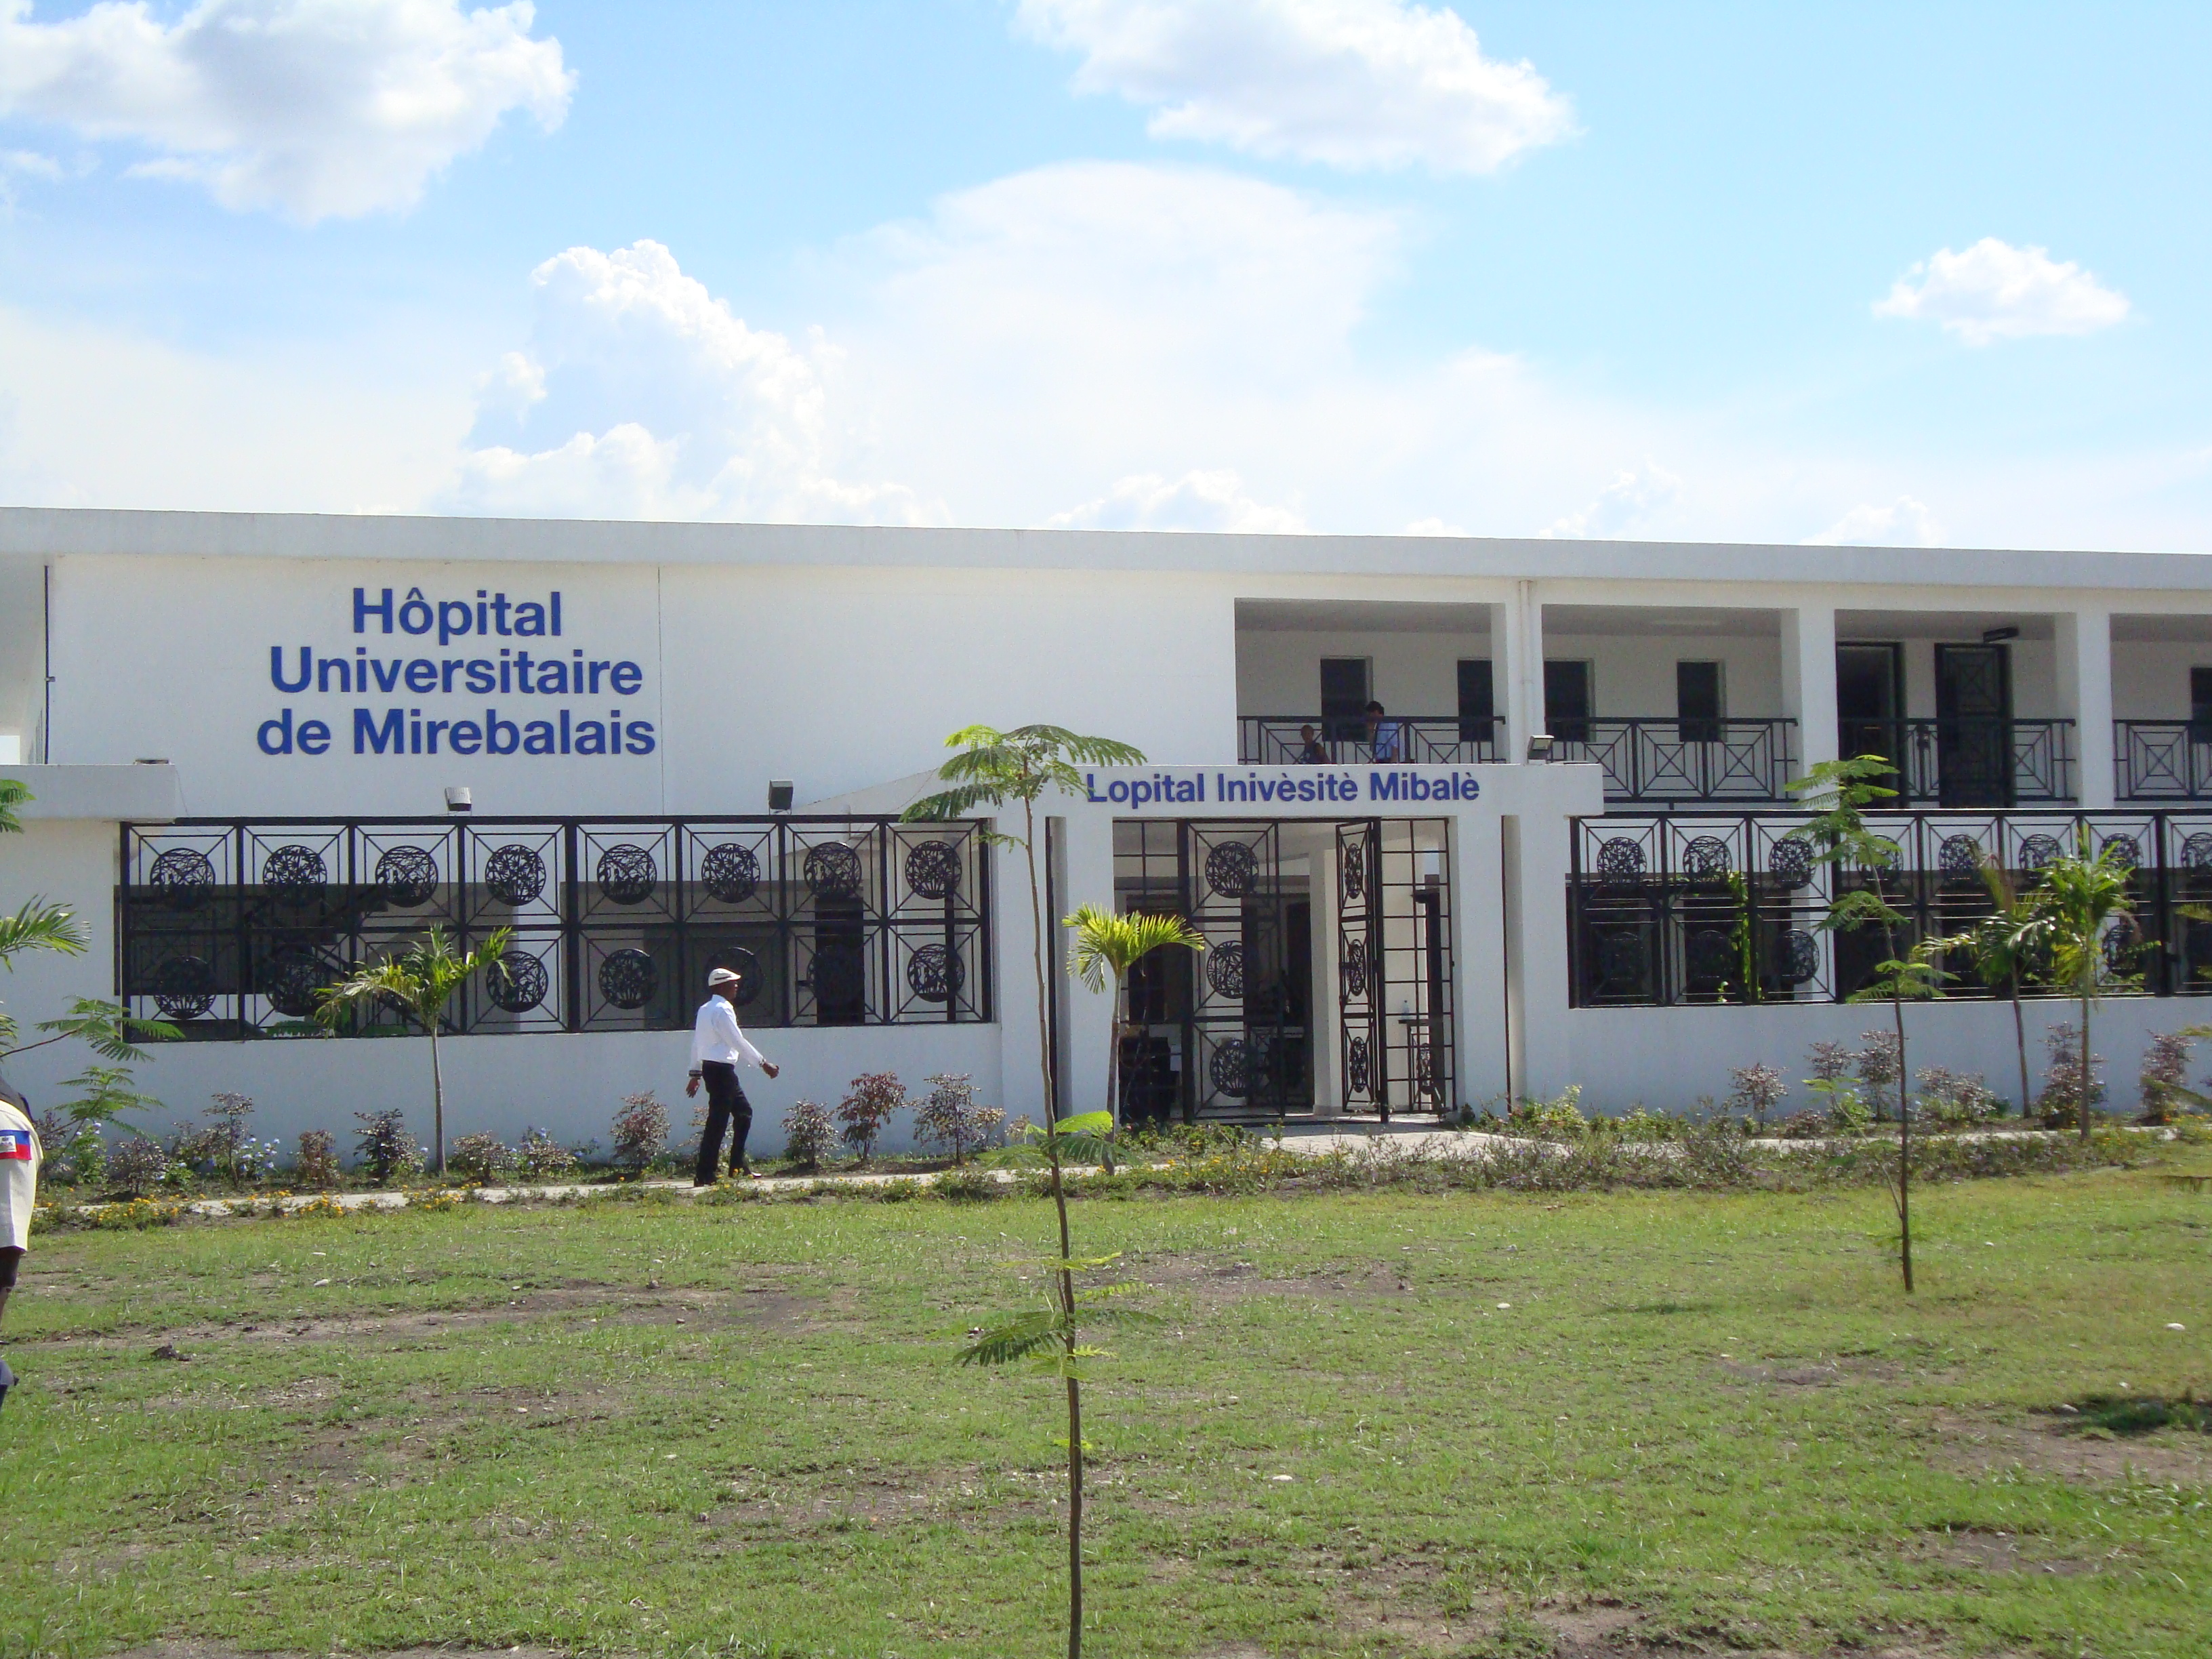 The Hôpital Universitaire de Mirebalais was constructed from the ground up in a former rice field.